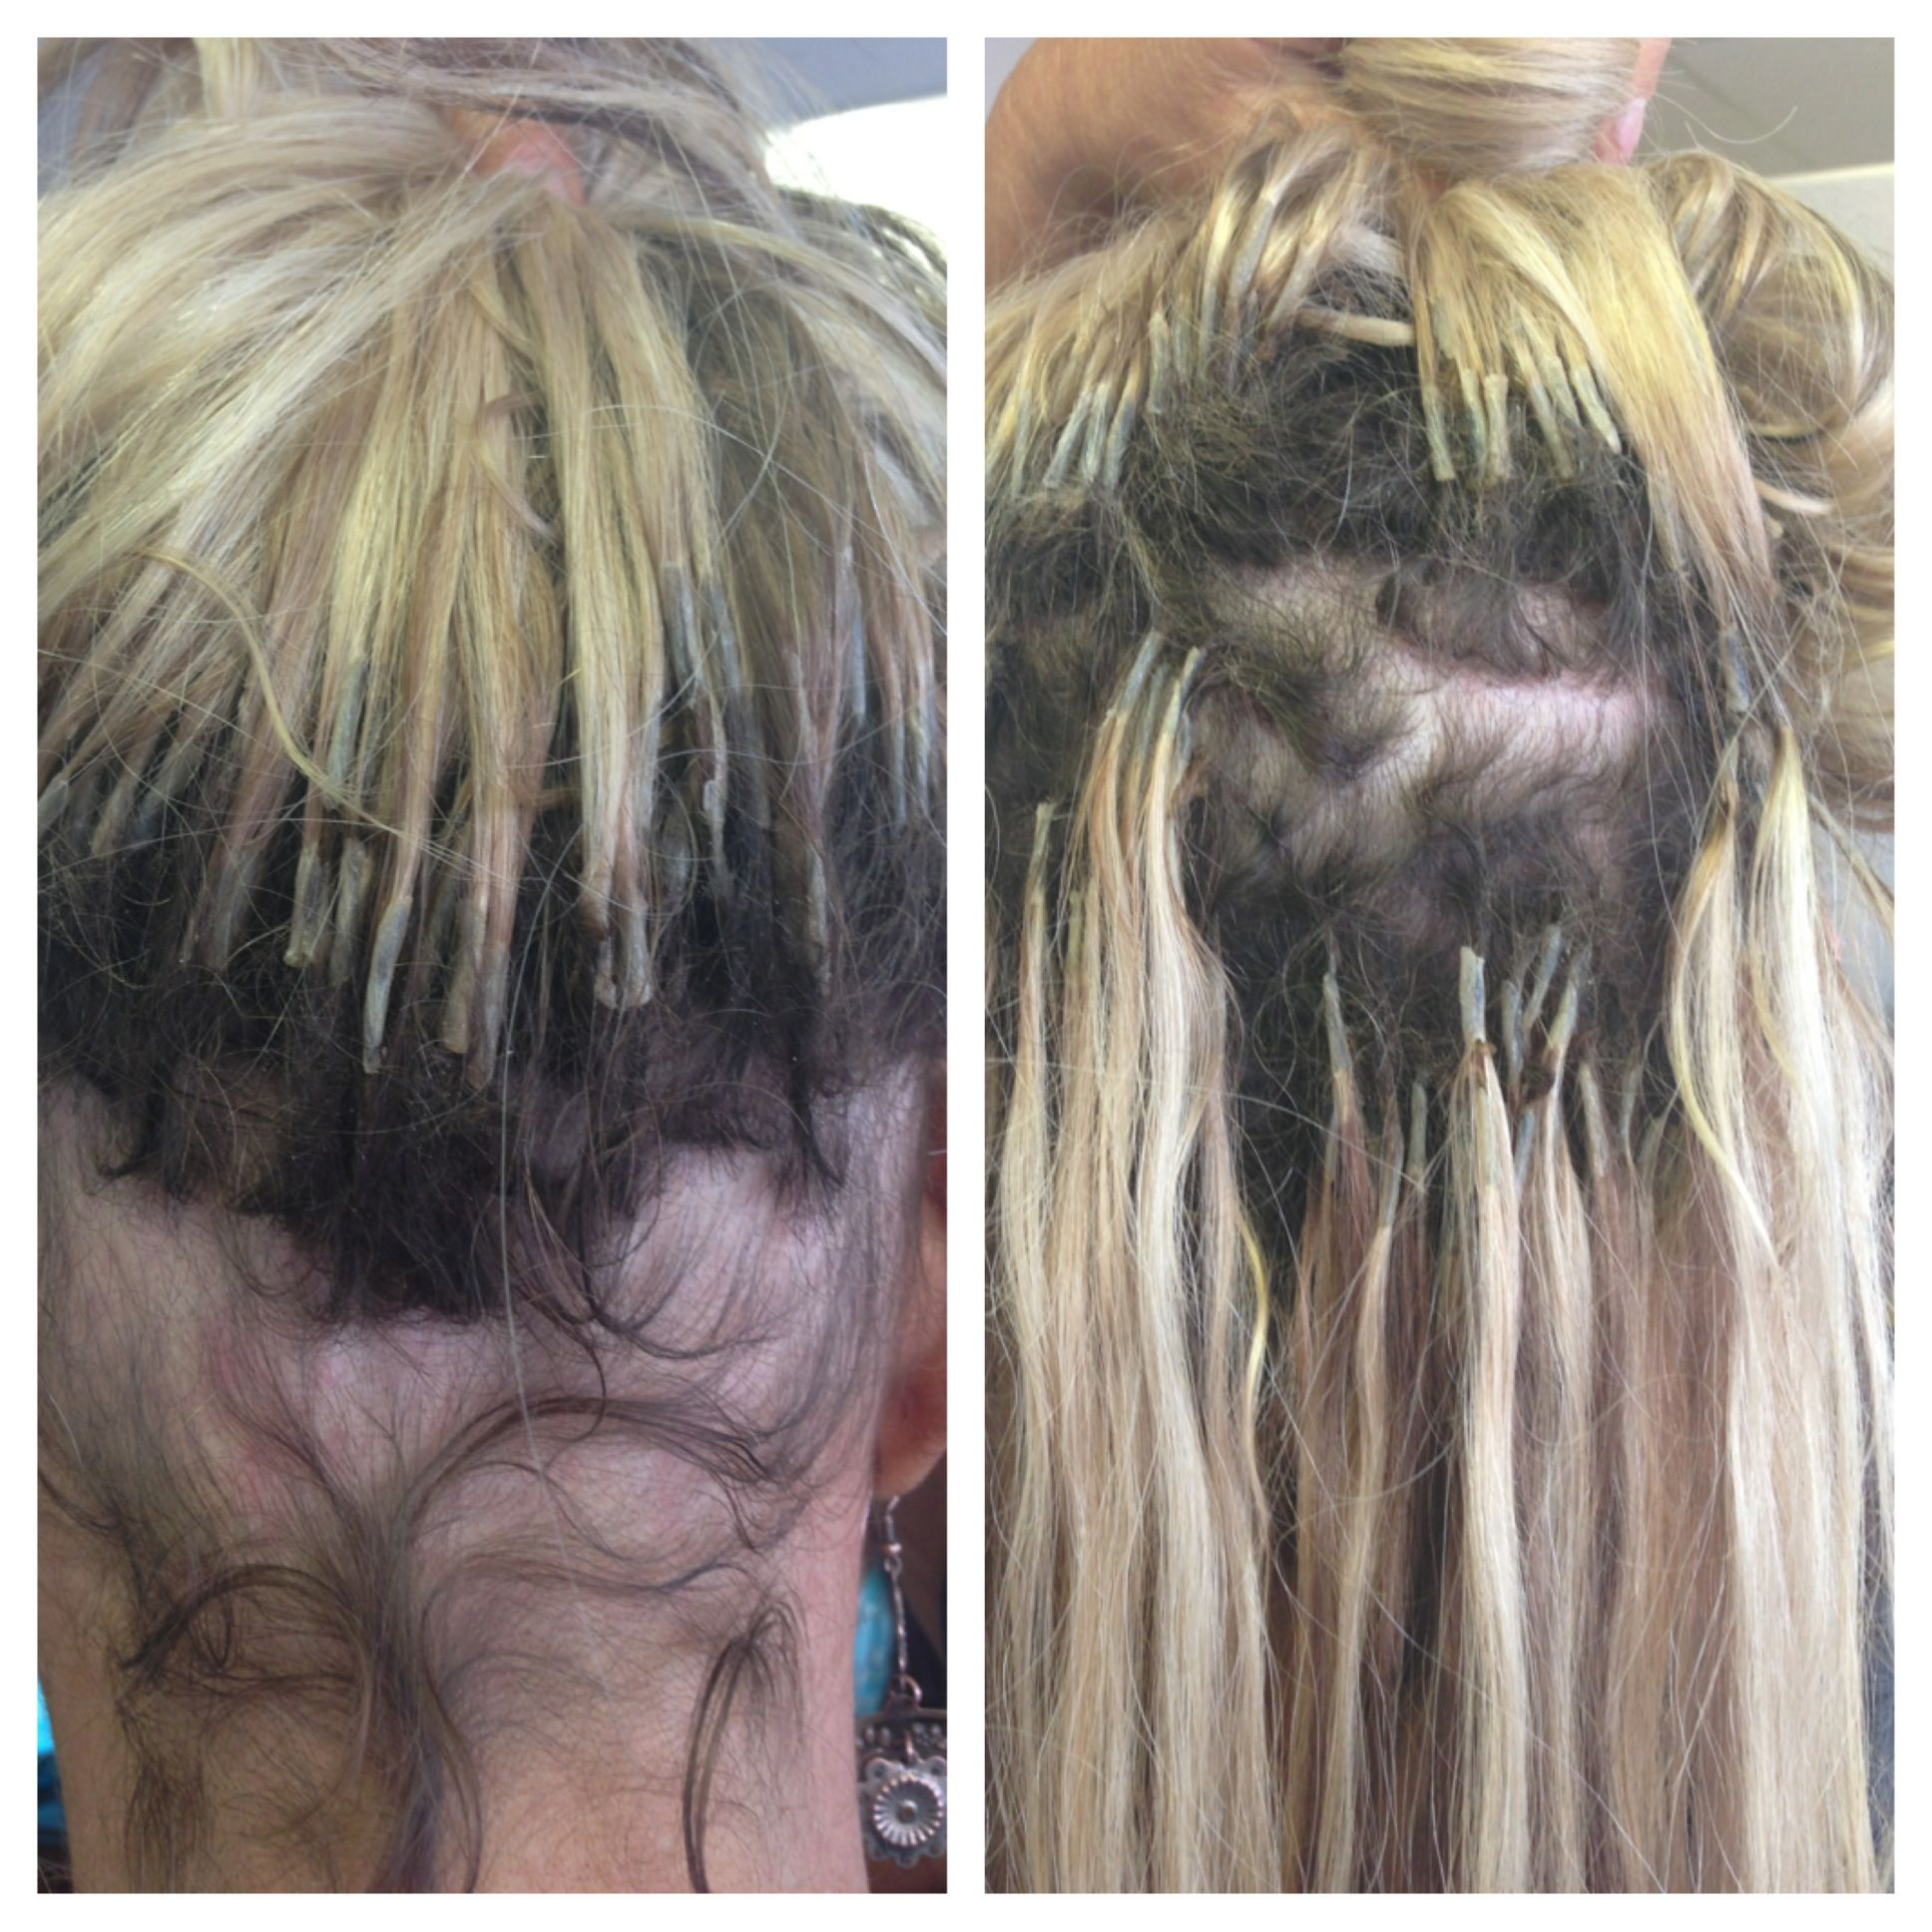 Ladies it is extremely important when getting extensions to make ladies it is extremely important when getting extensions to make sure they are done properly pmusecretfo Images